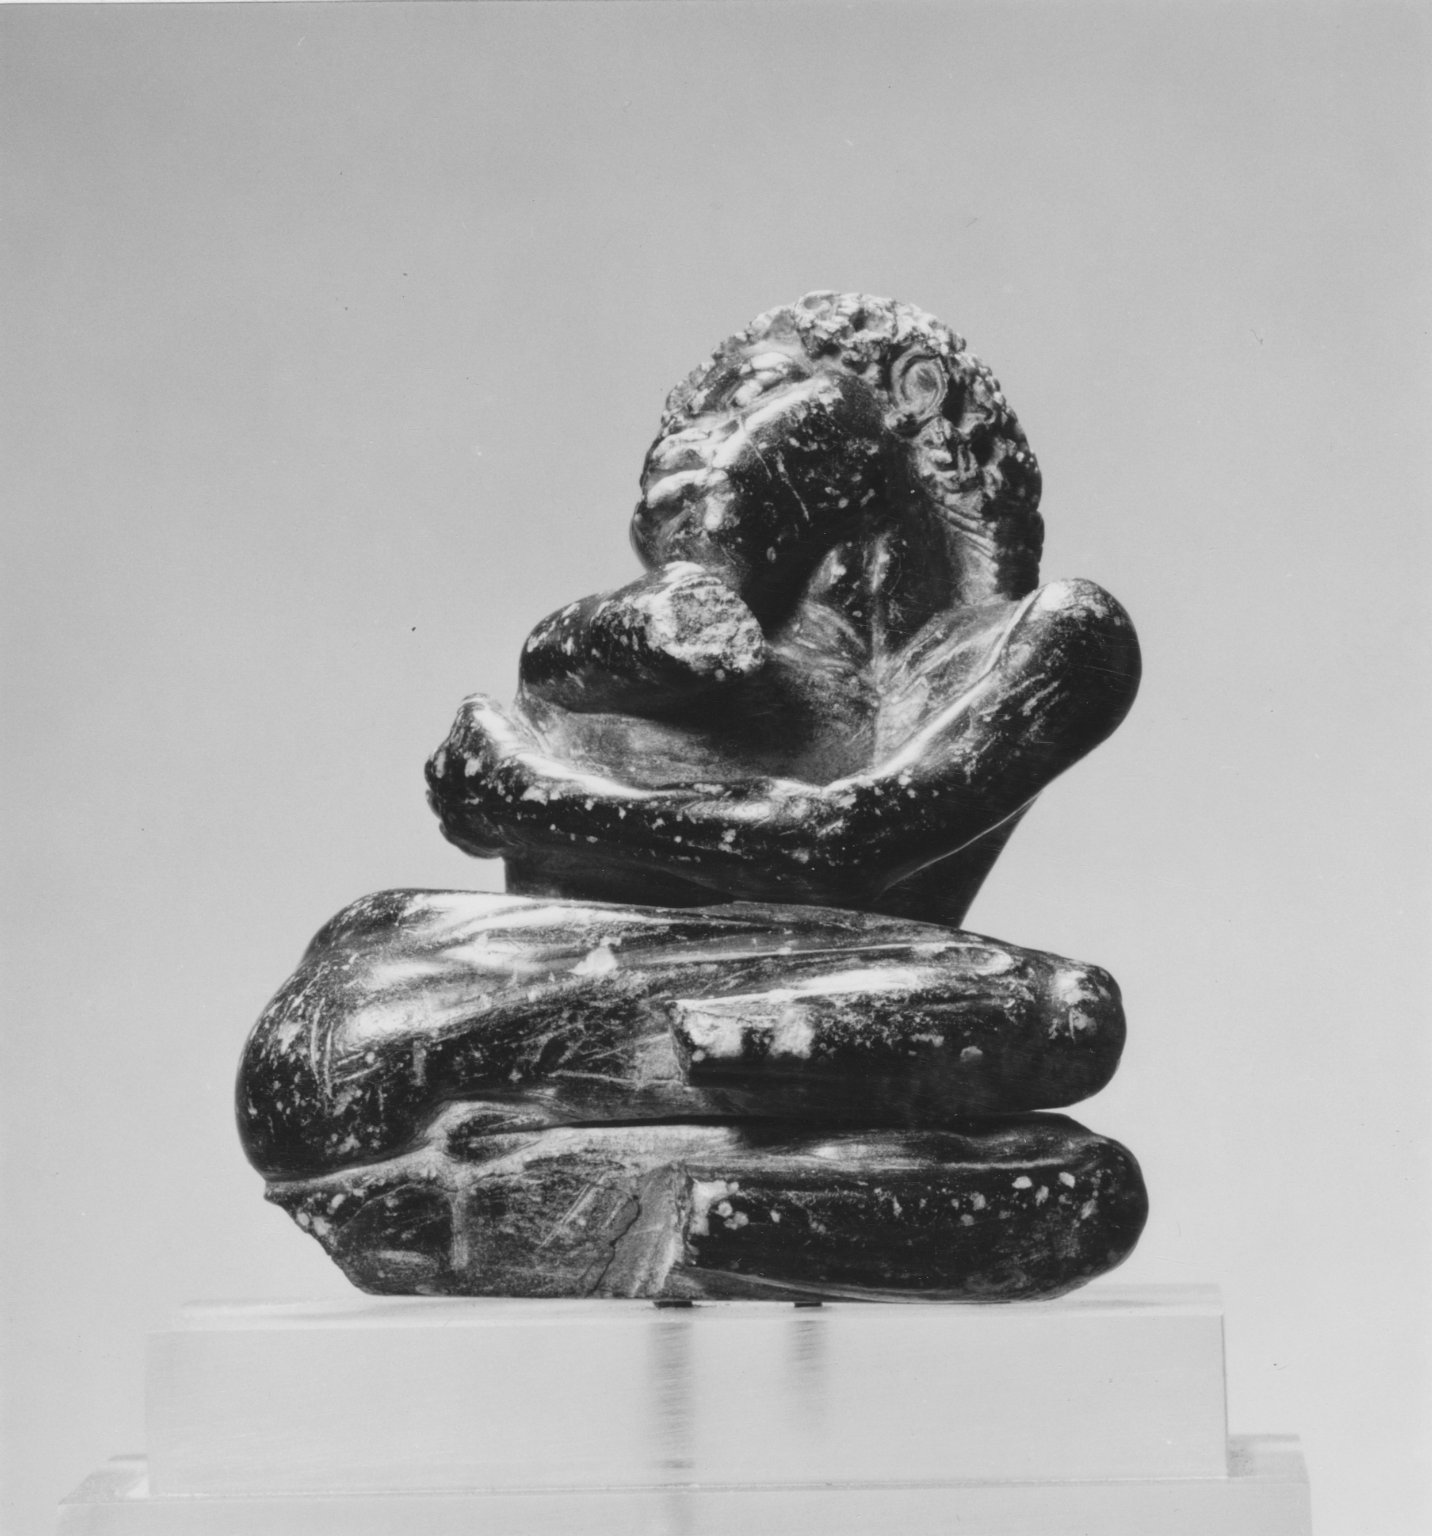 Brooklyn Museum: Statuette of a Nubian Captive